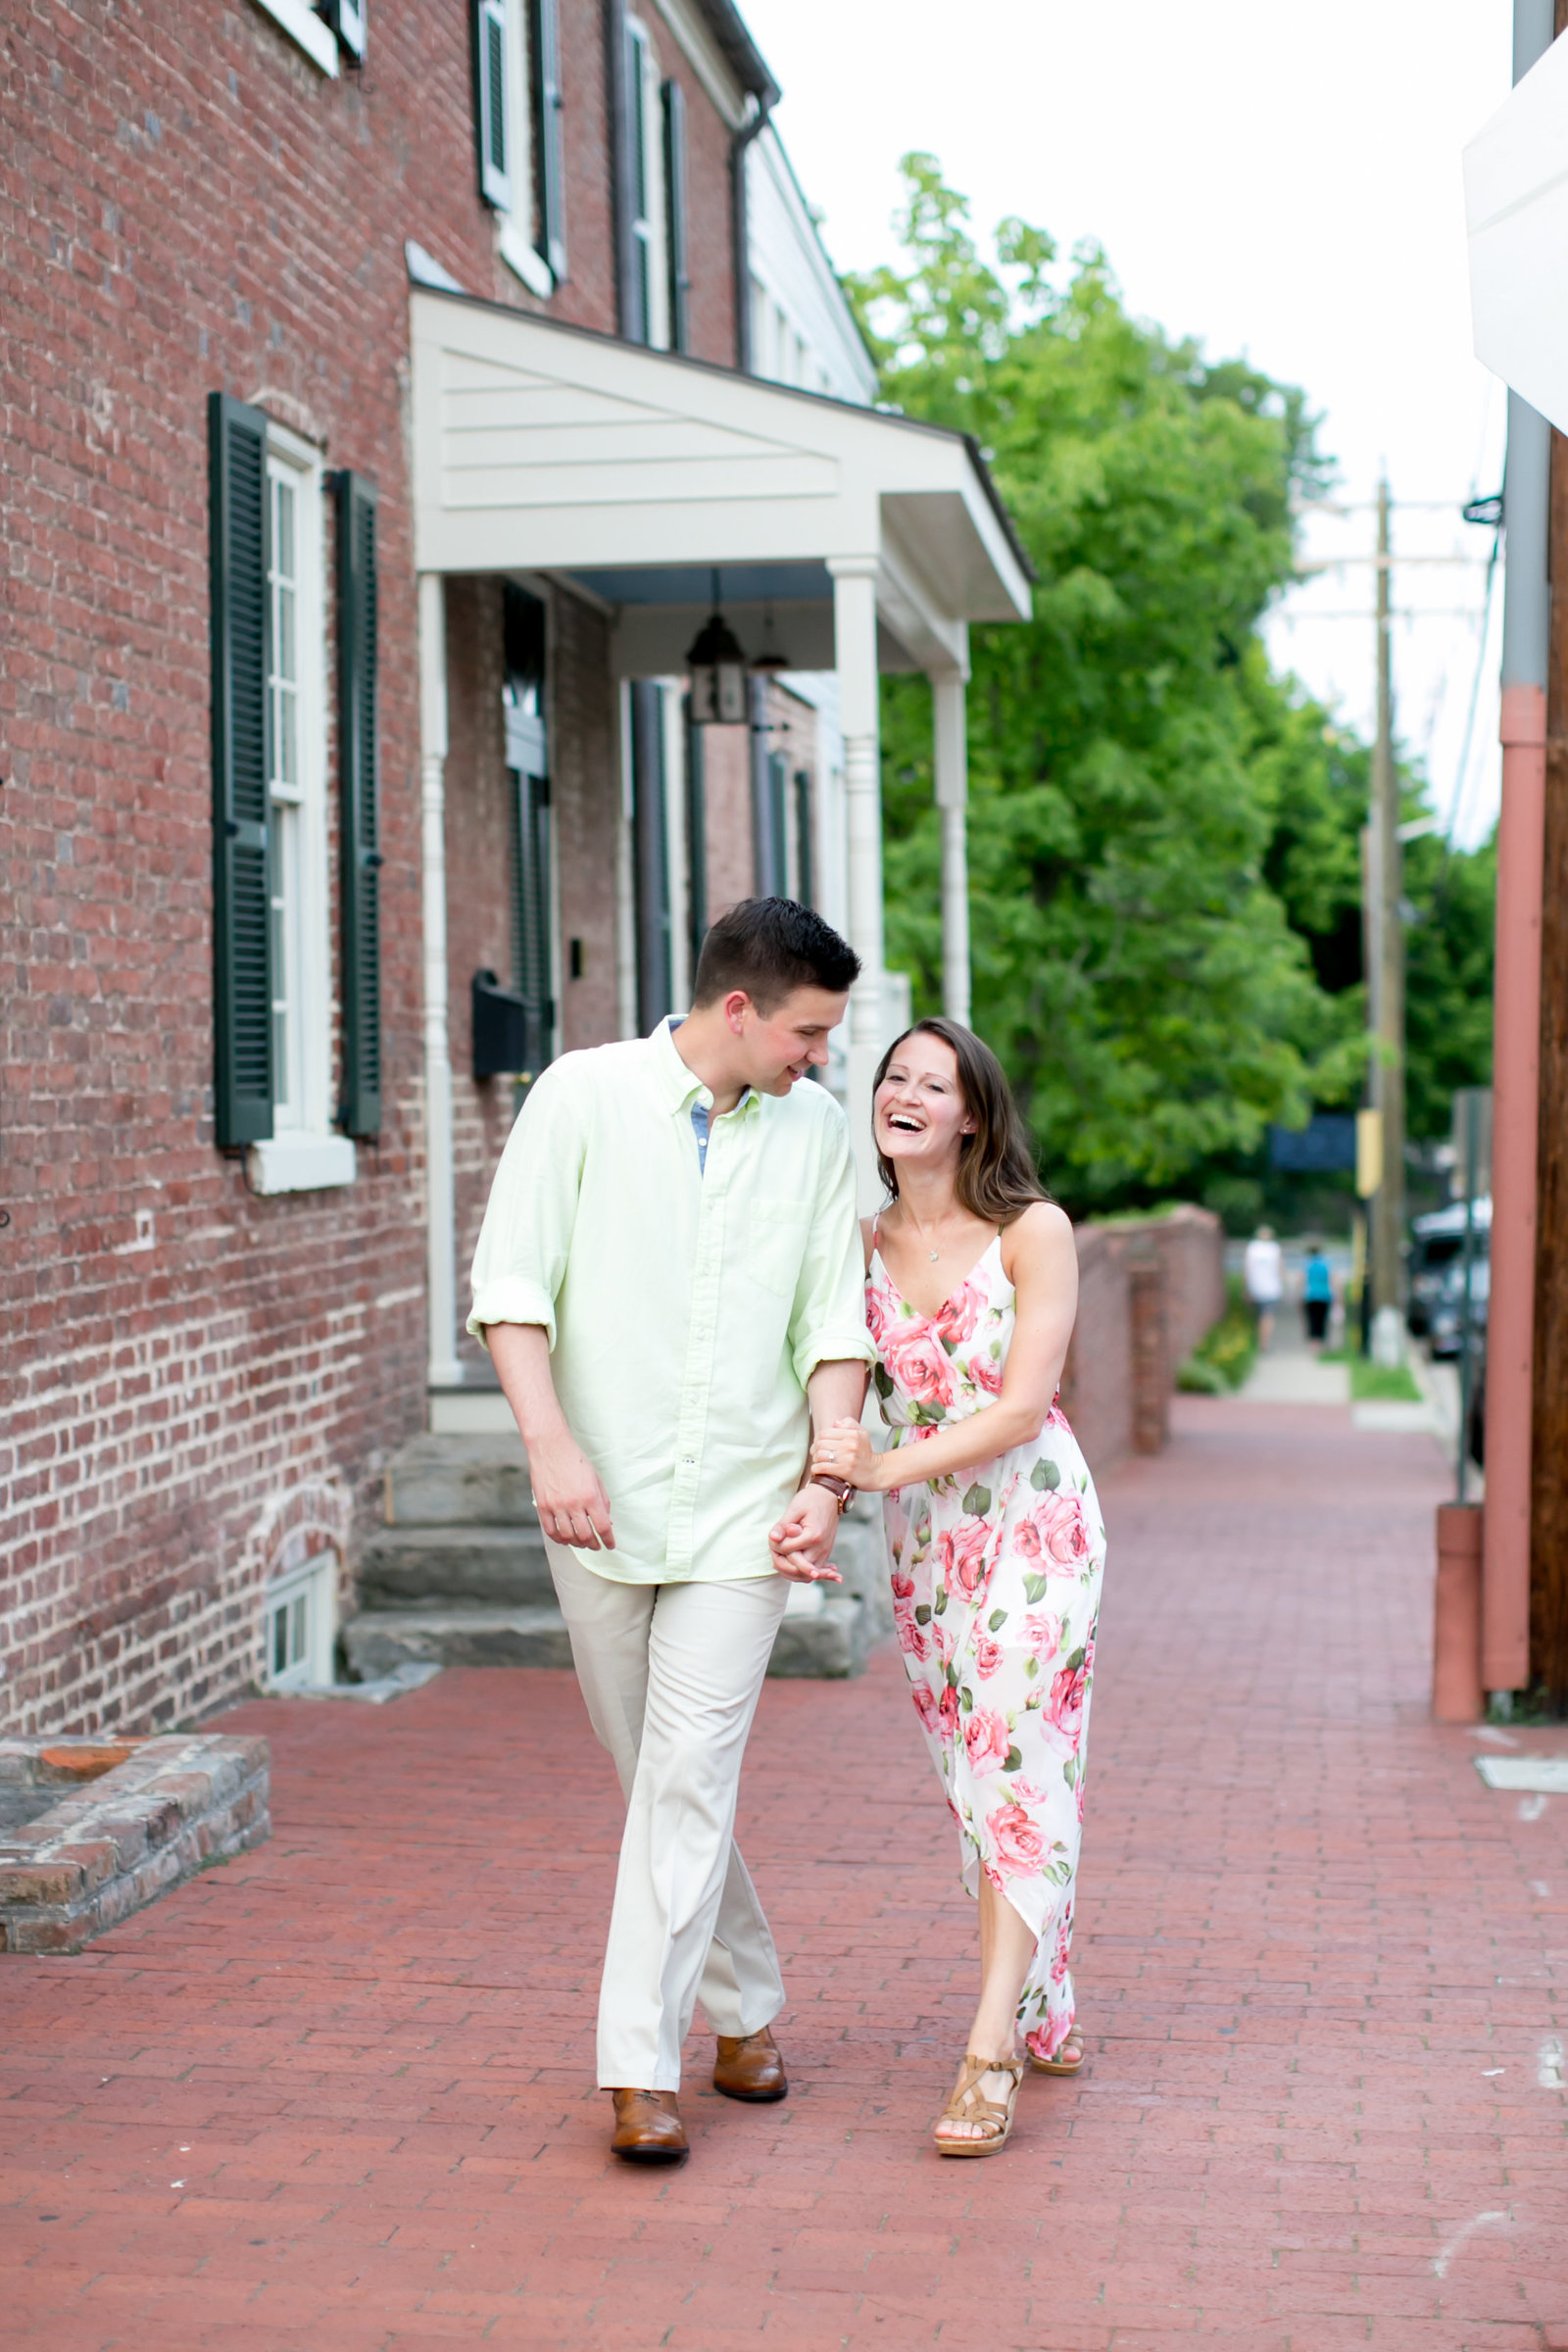 Carley Rehberg Photography - Engagement Photographer - Photo - 13